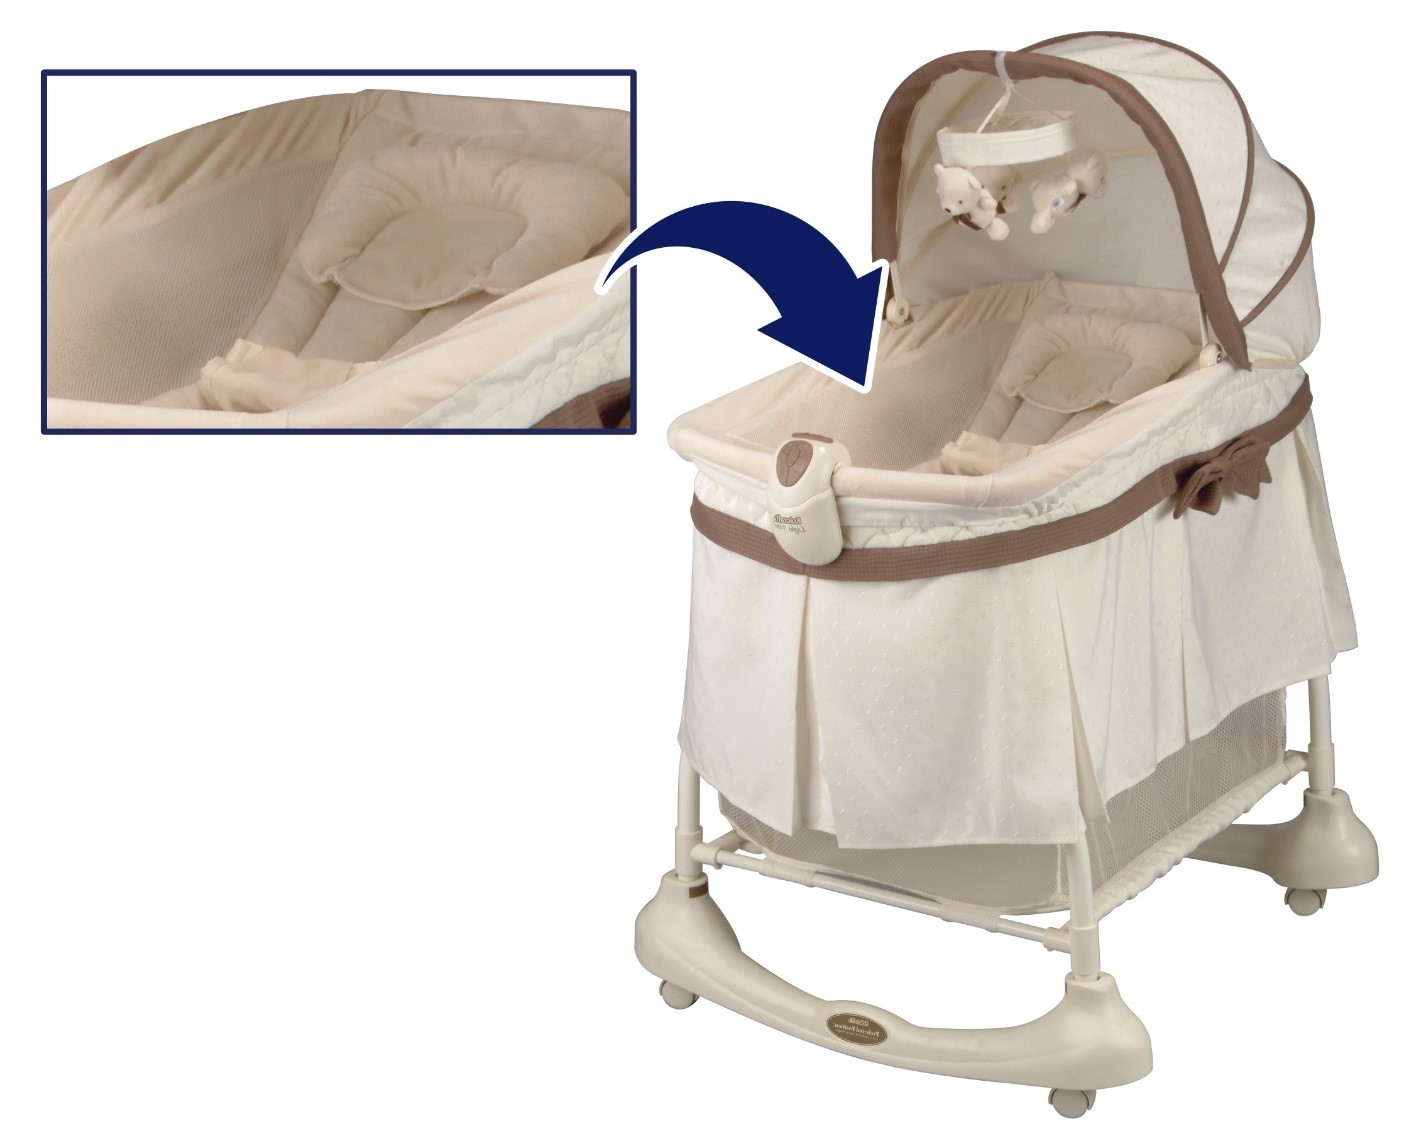 Recalled inclined sleeper accessory found in Kolcraft Preferred Position 2-in-1 Bassinet & Incline Sleeper (model number starting with KB061)